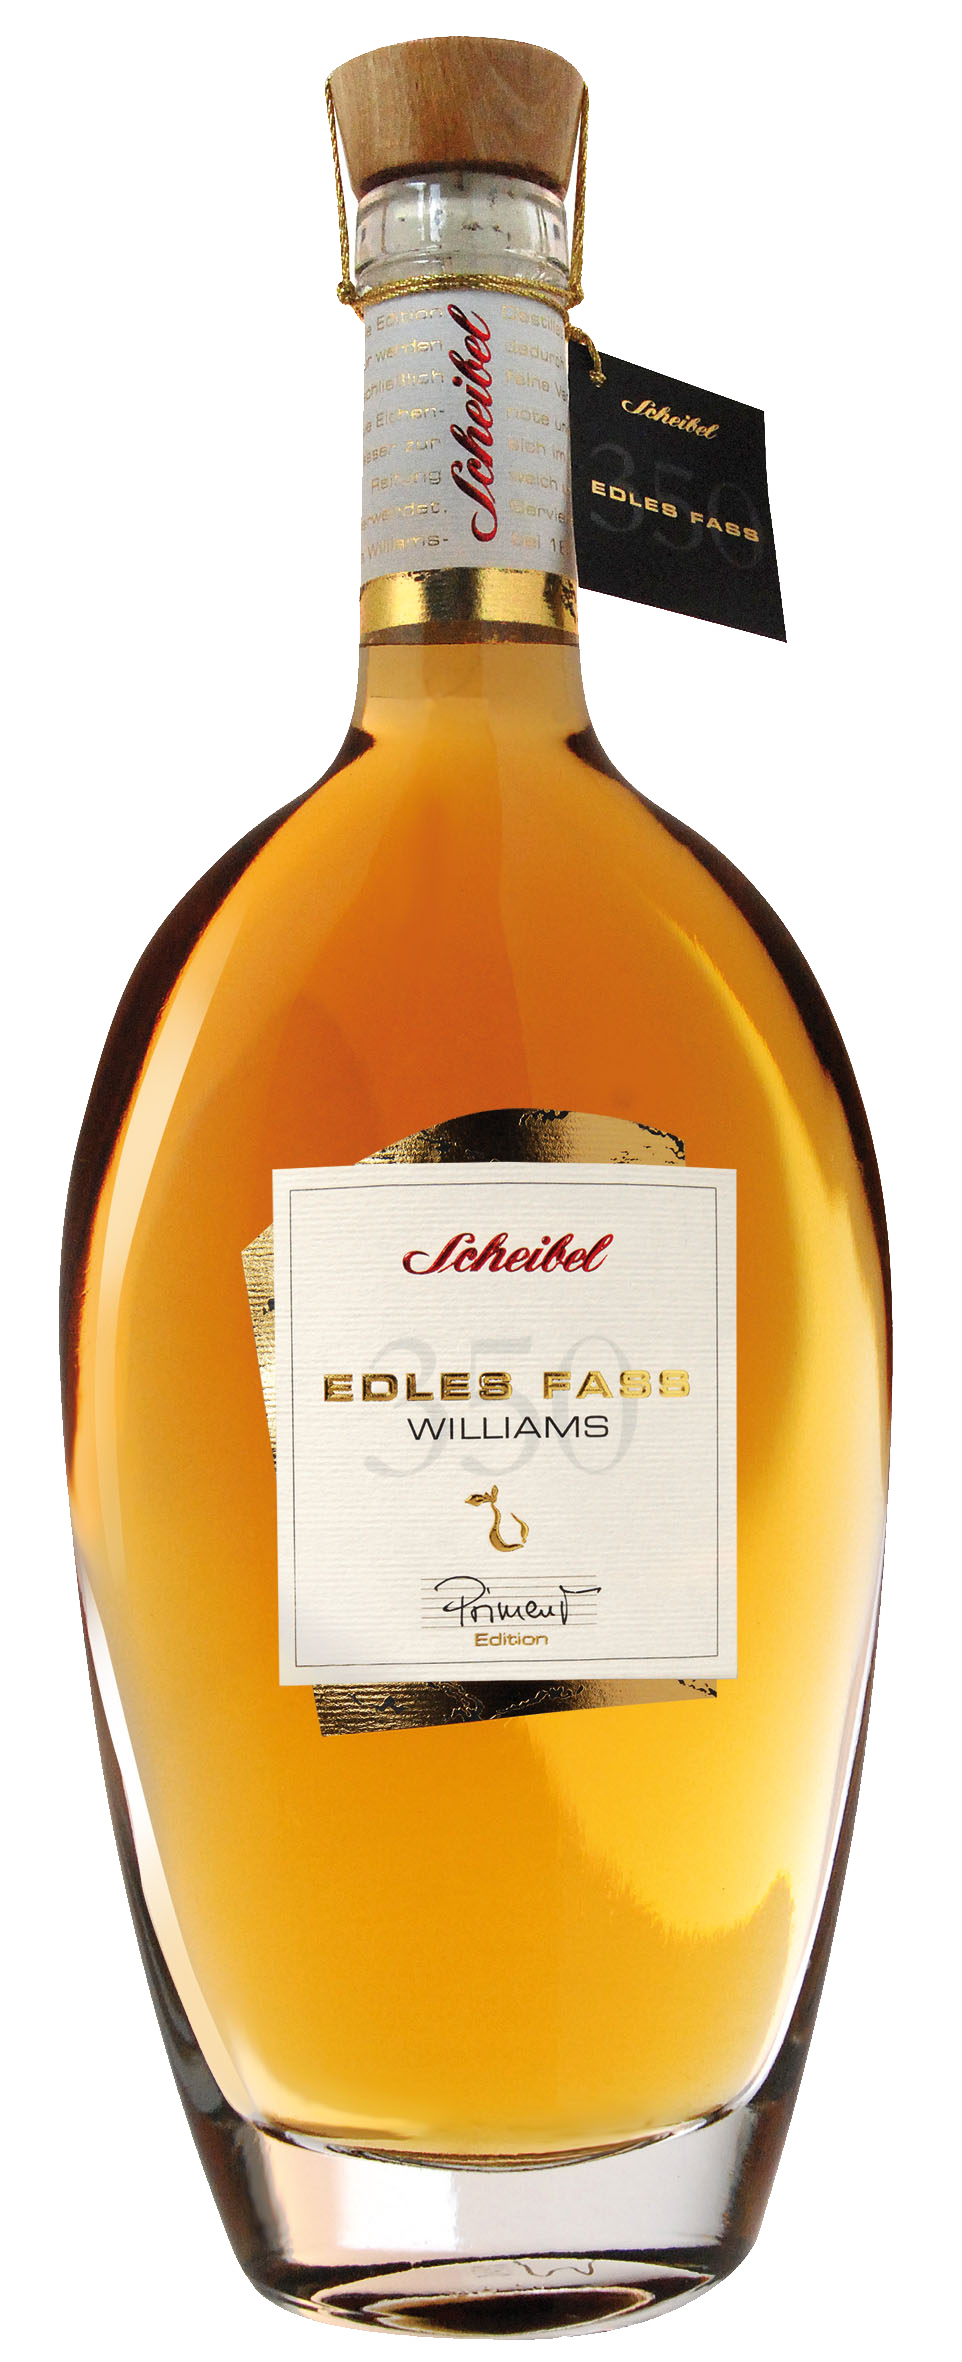 Brennerei Scheibel Edles Fass Williams 0,70l. 40%